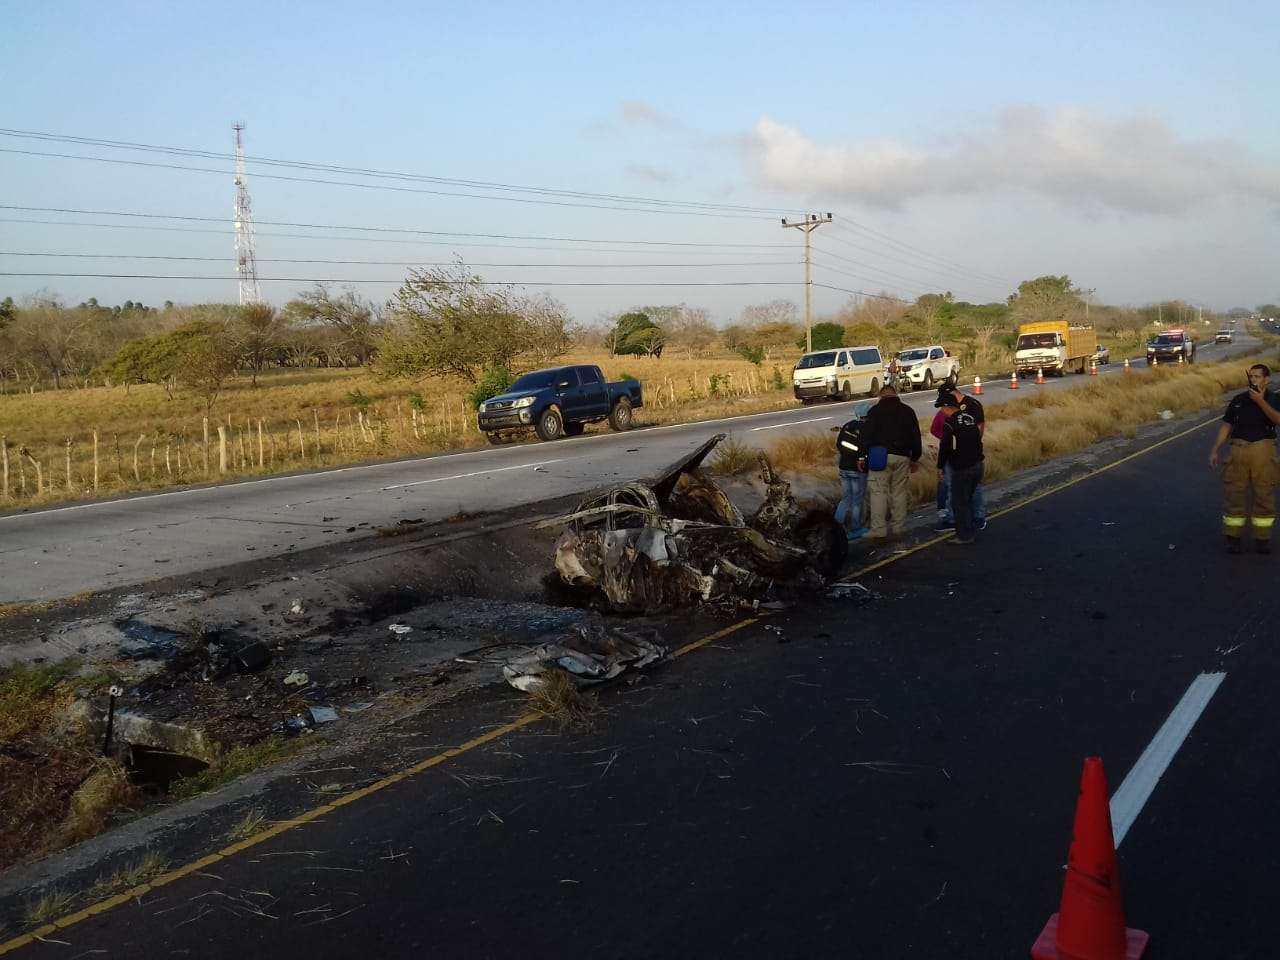 Vista general de la escena del accidente. Foto: @TraficoCPanama